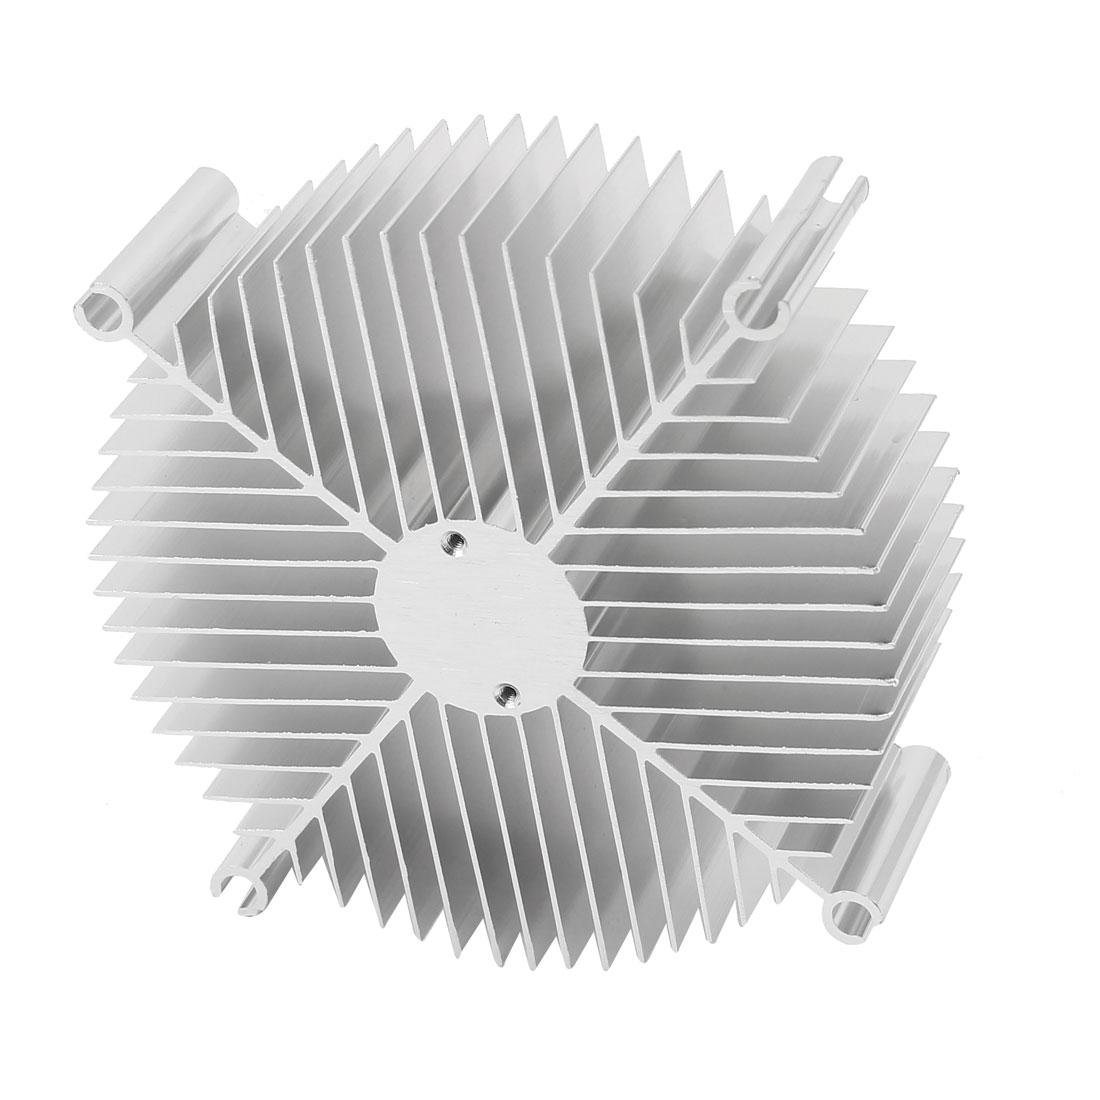 108mm x 30mm Cylinder 10W High Power LED Heatsink Aluminium Cooling Fin